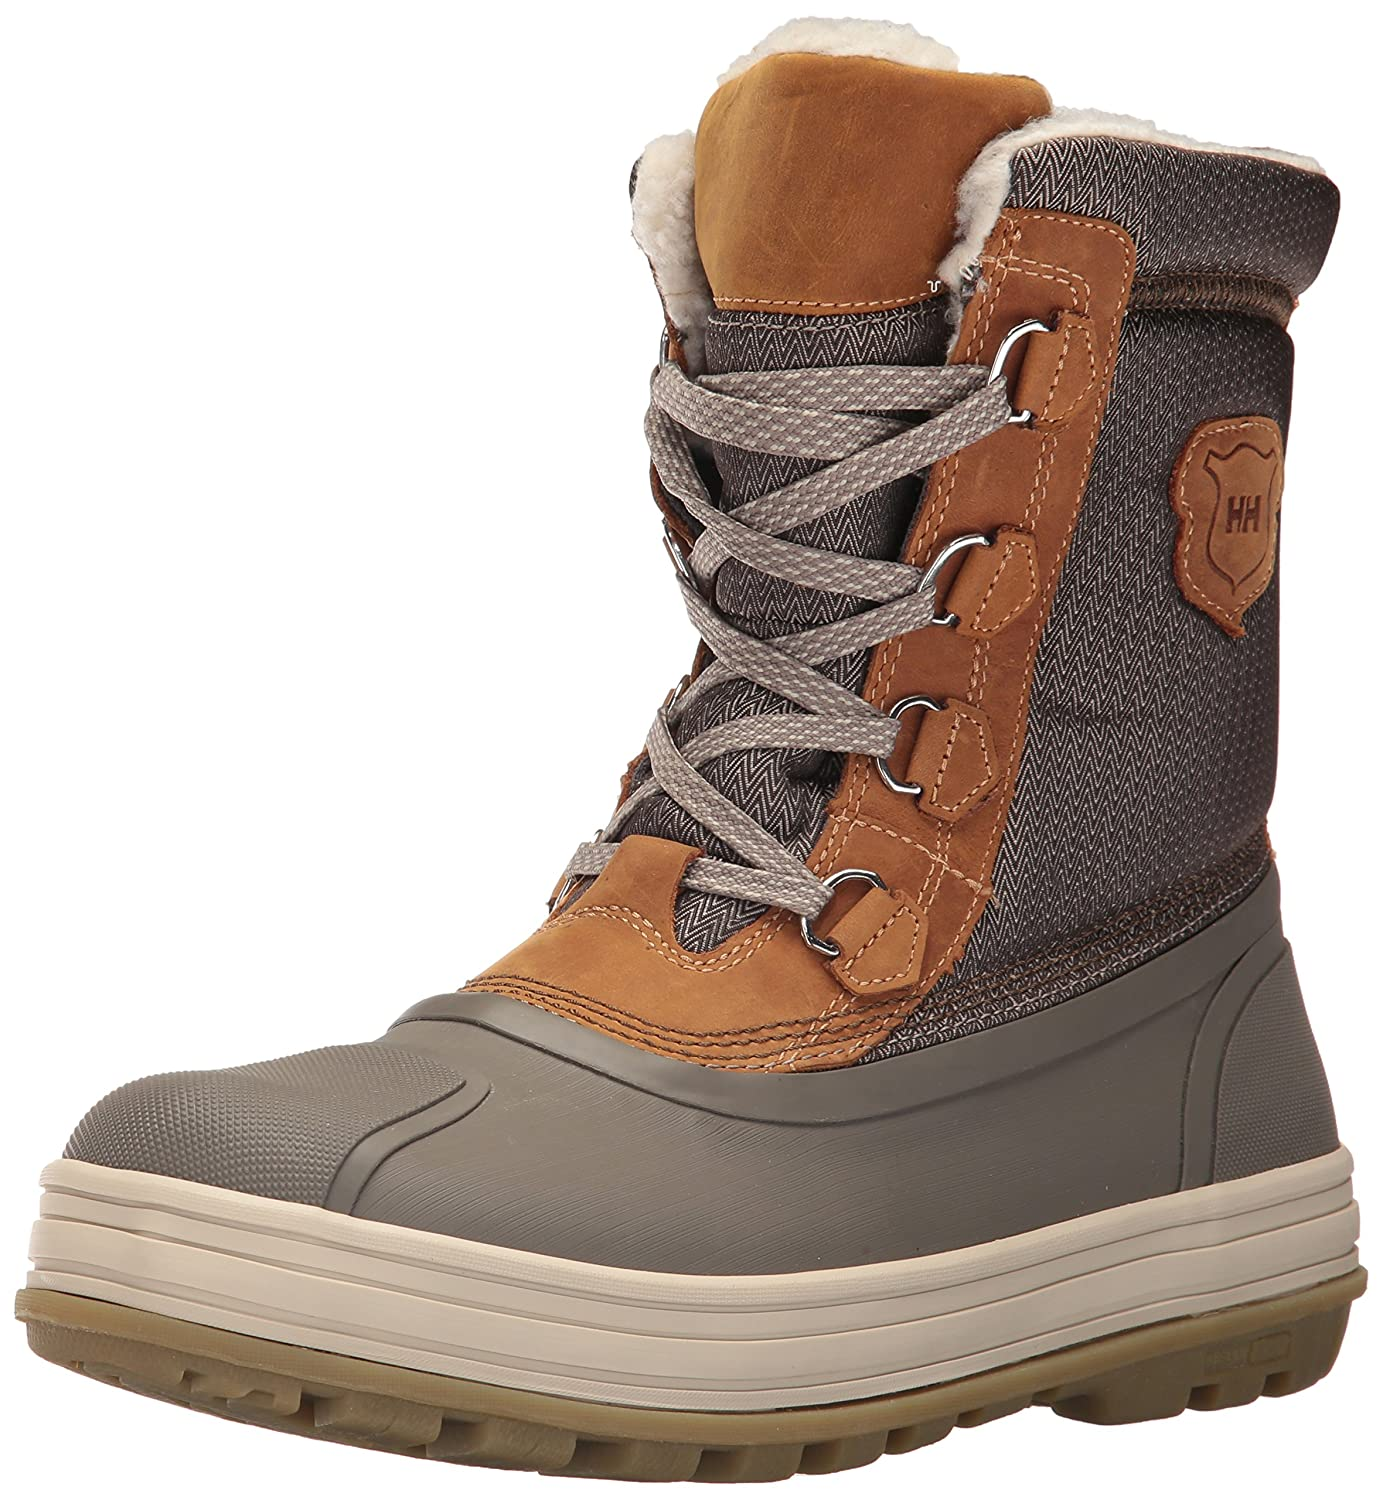 Helly Hansen Women's Framheim Snow Boot B01JLSO4TY 8.5 B(M) US|Moon Rock/Bungee Cord